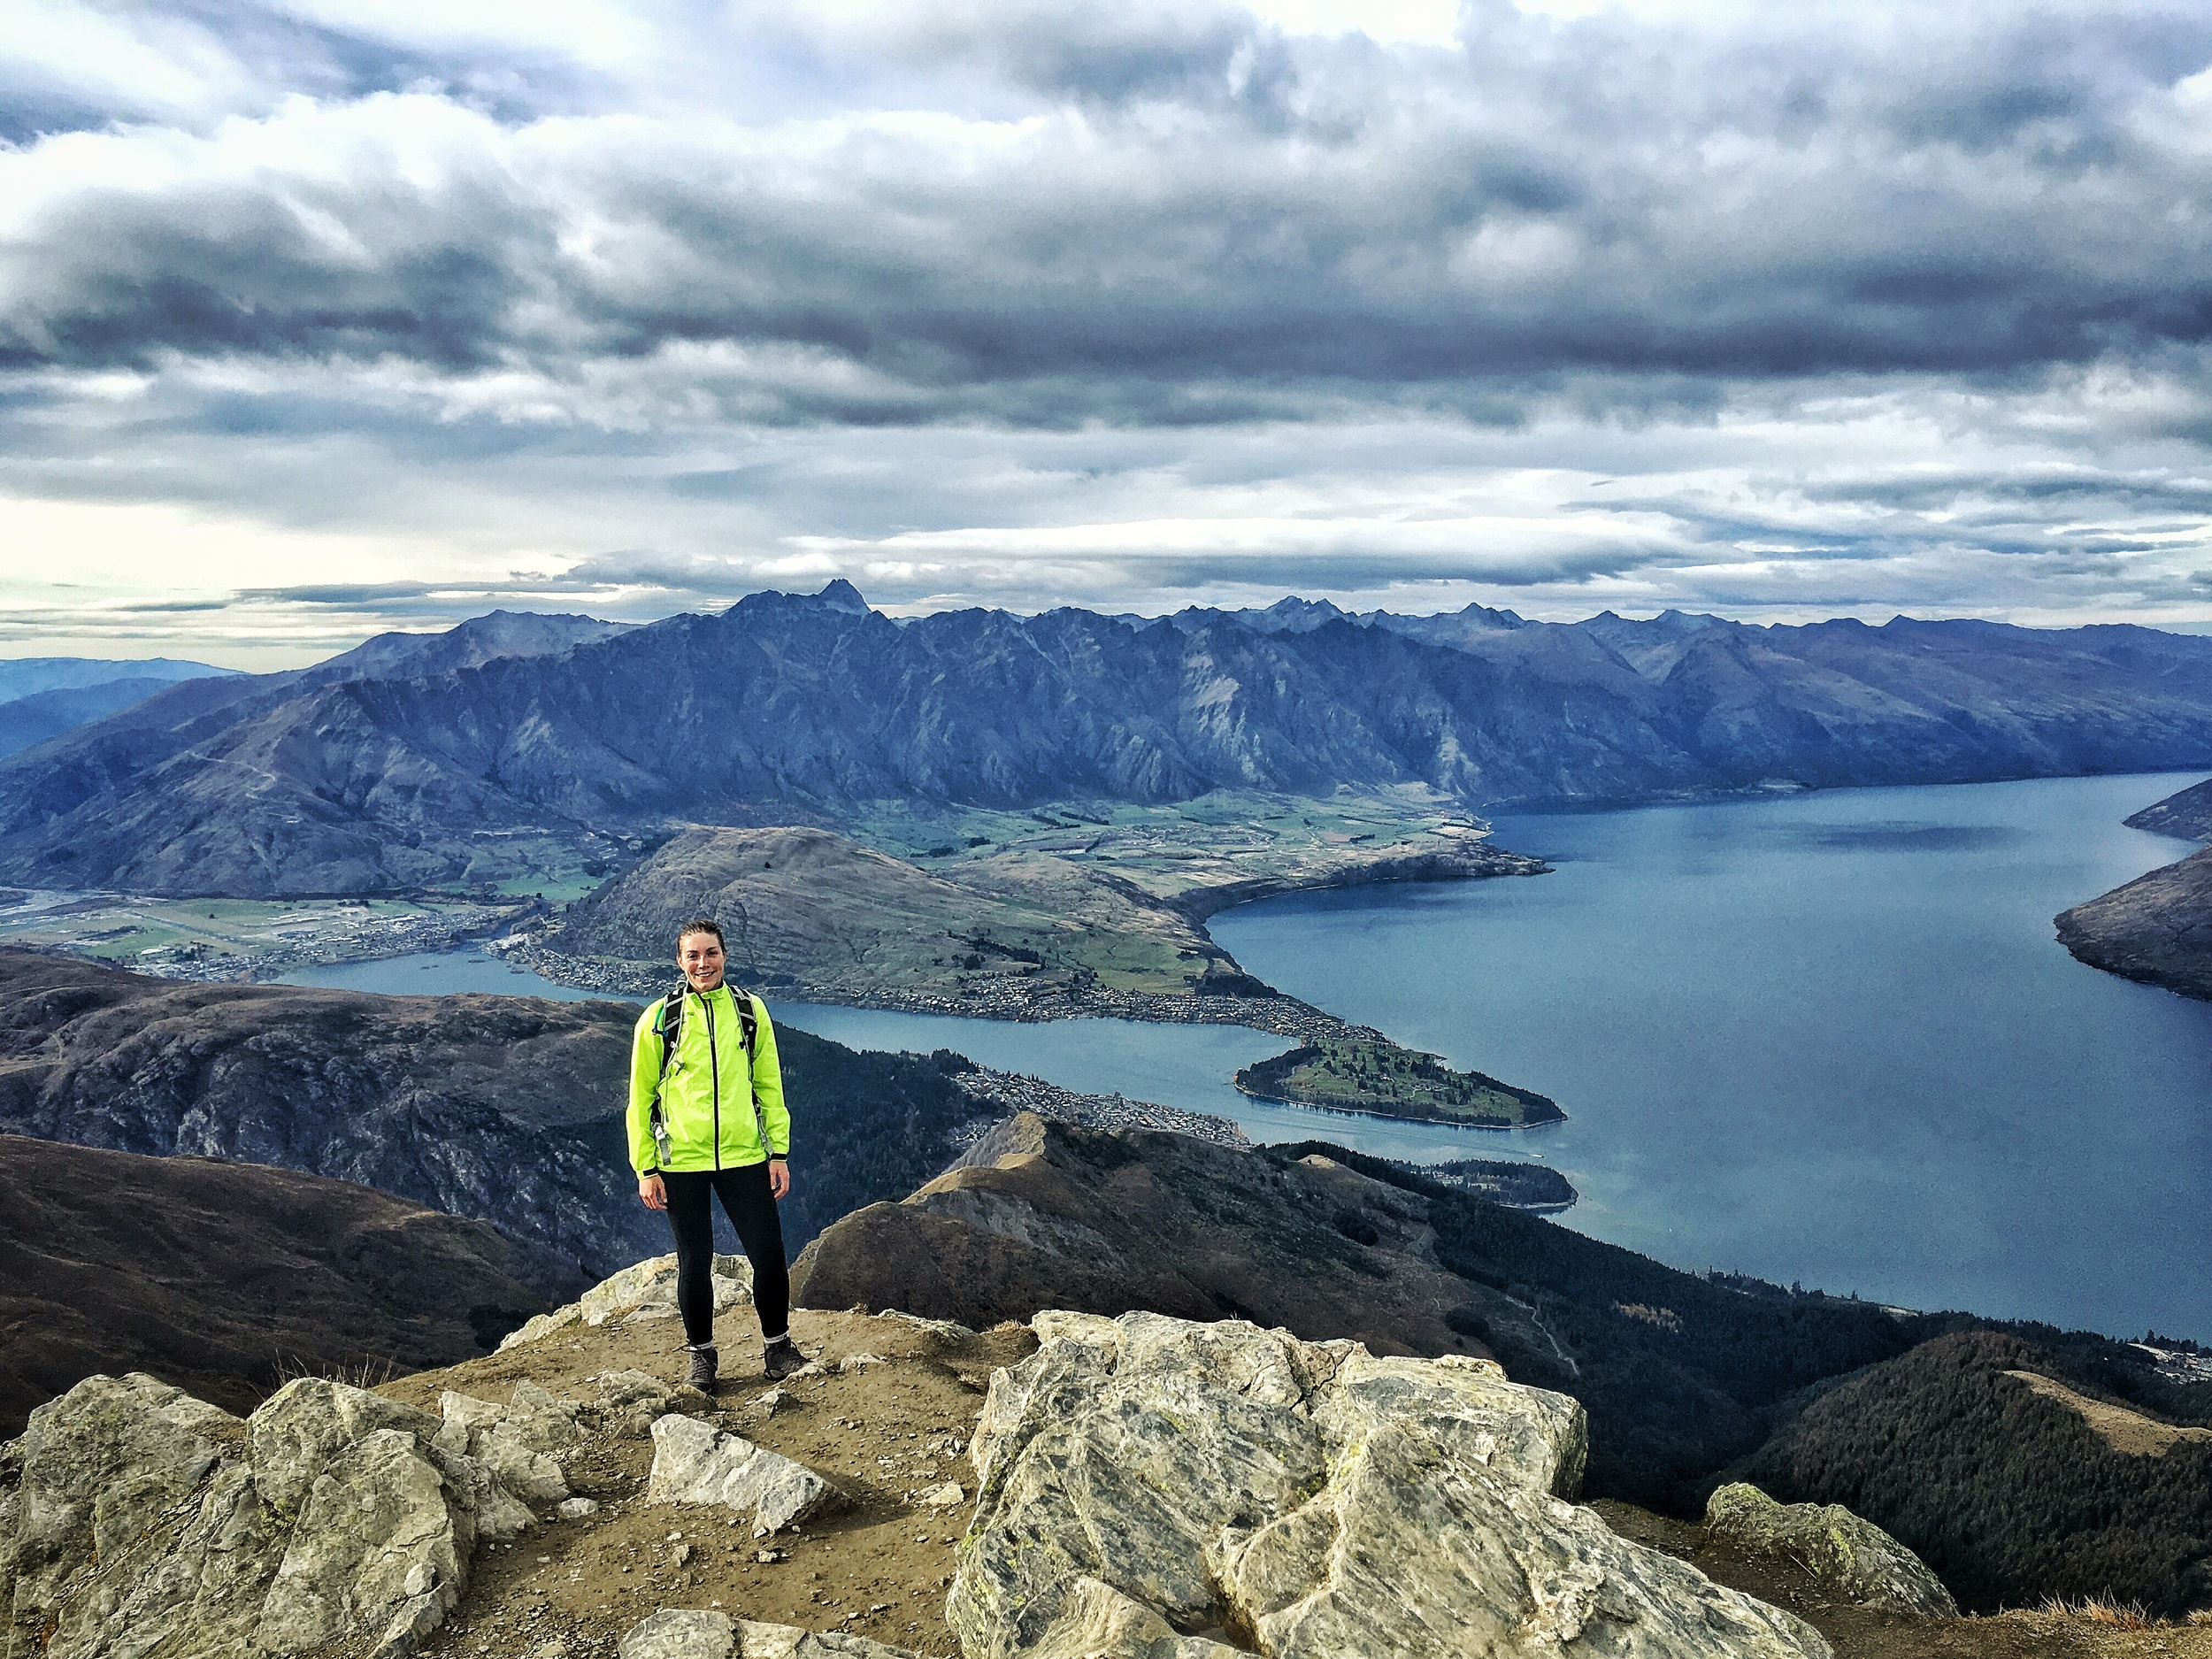 // Summit, with a view South toward Queenstown + Lake Wakatipu